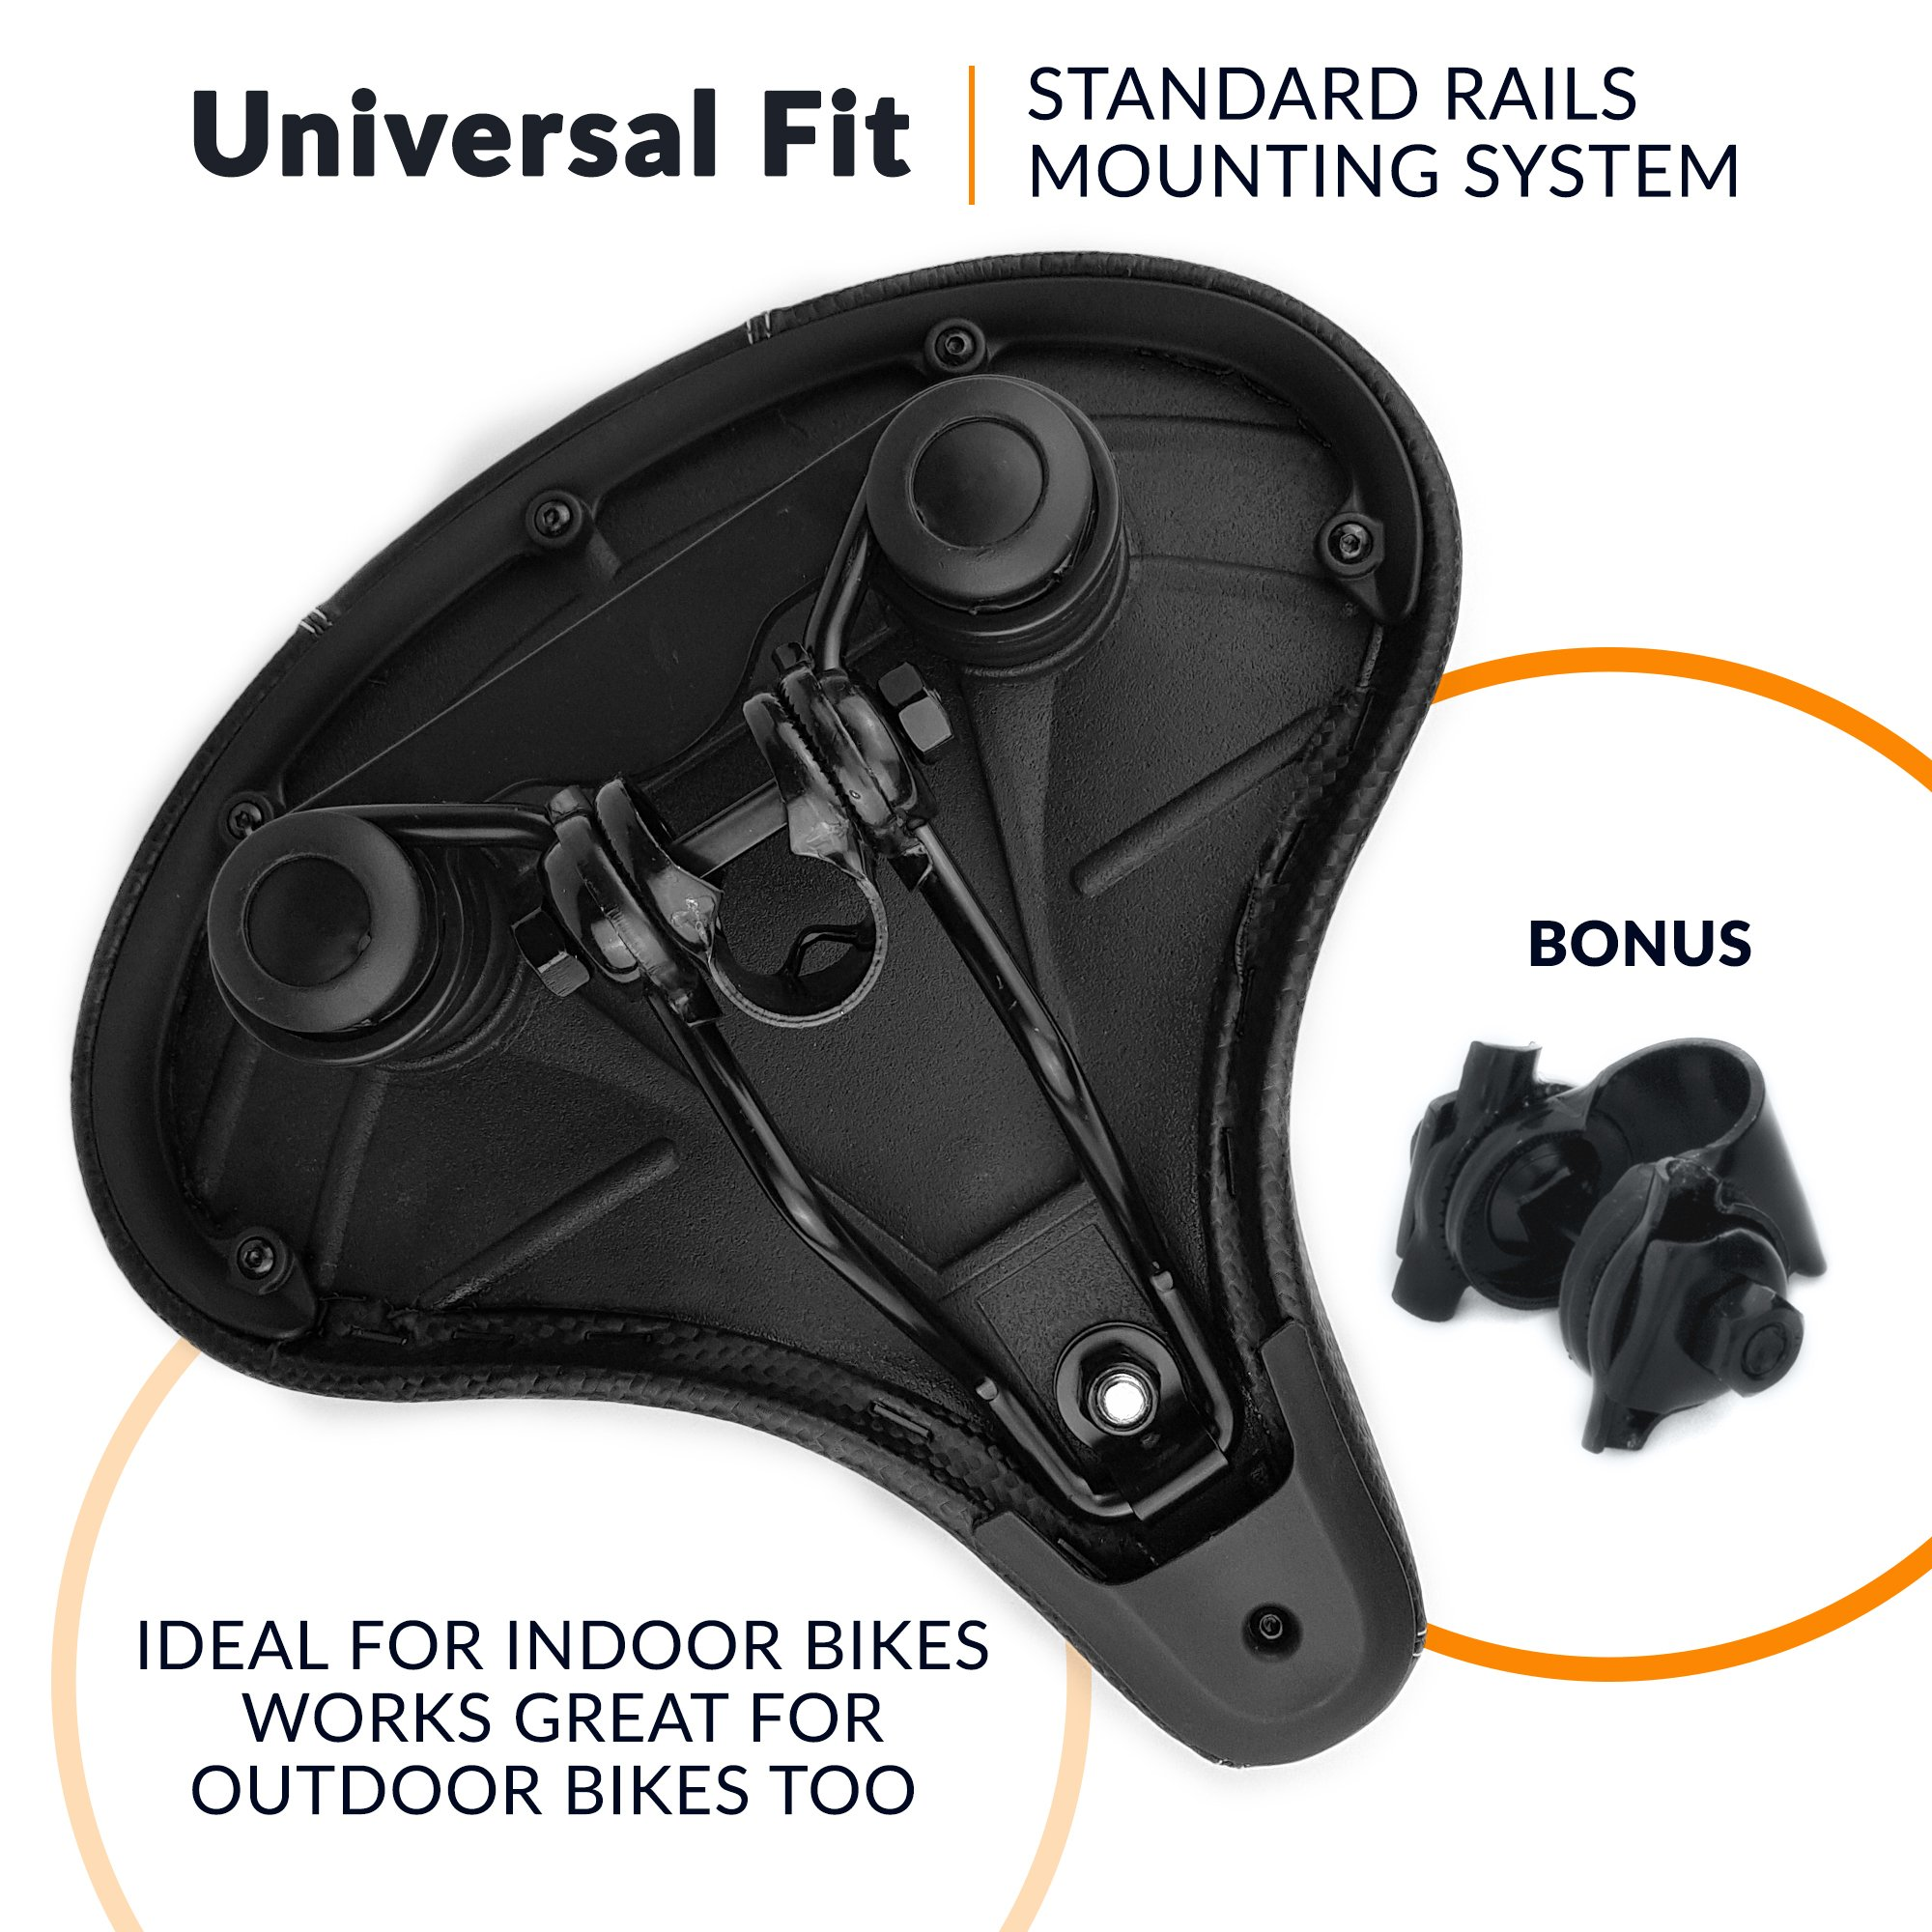 Bikeroo Oversized Comfort Bike Seat Most Comfortable Replacement Bicycle Saddle - Universal Fit for Exercise Bike and Outdoor Bikes - Wide Soft Padded Bike Saddle for Women and Men by Bikeroo (Image #4)